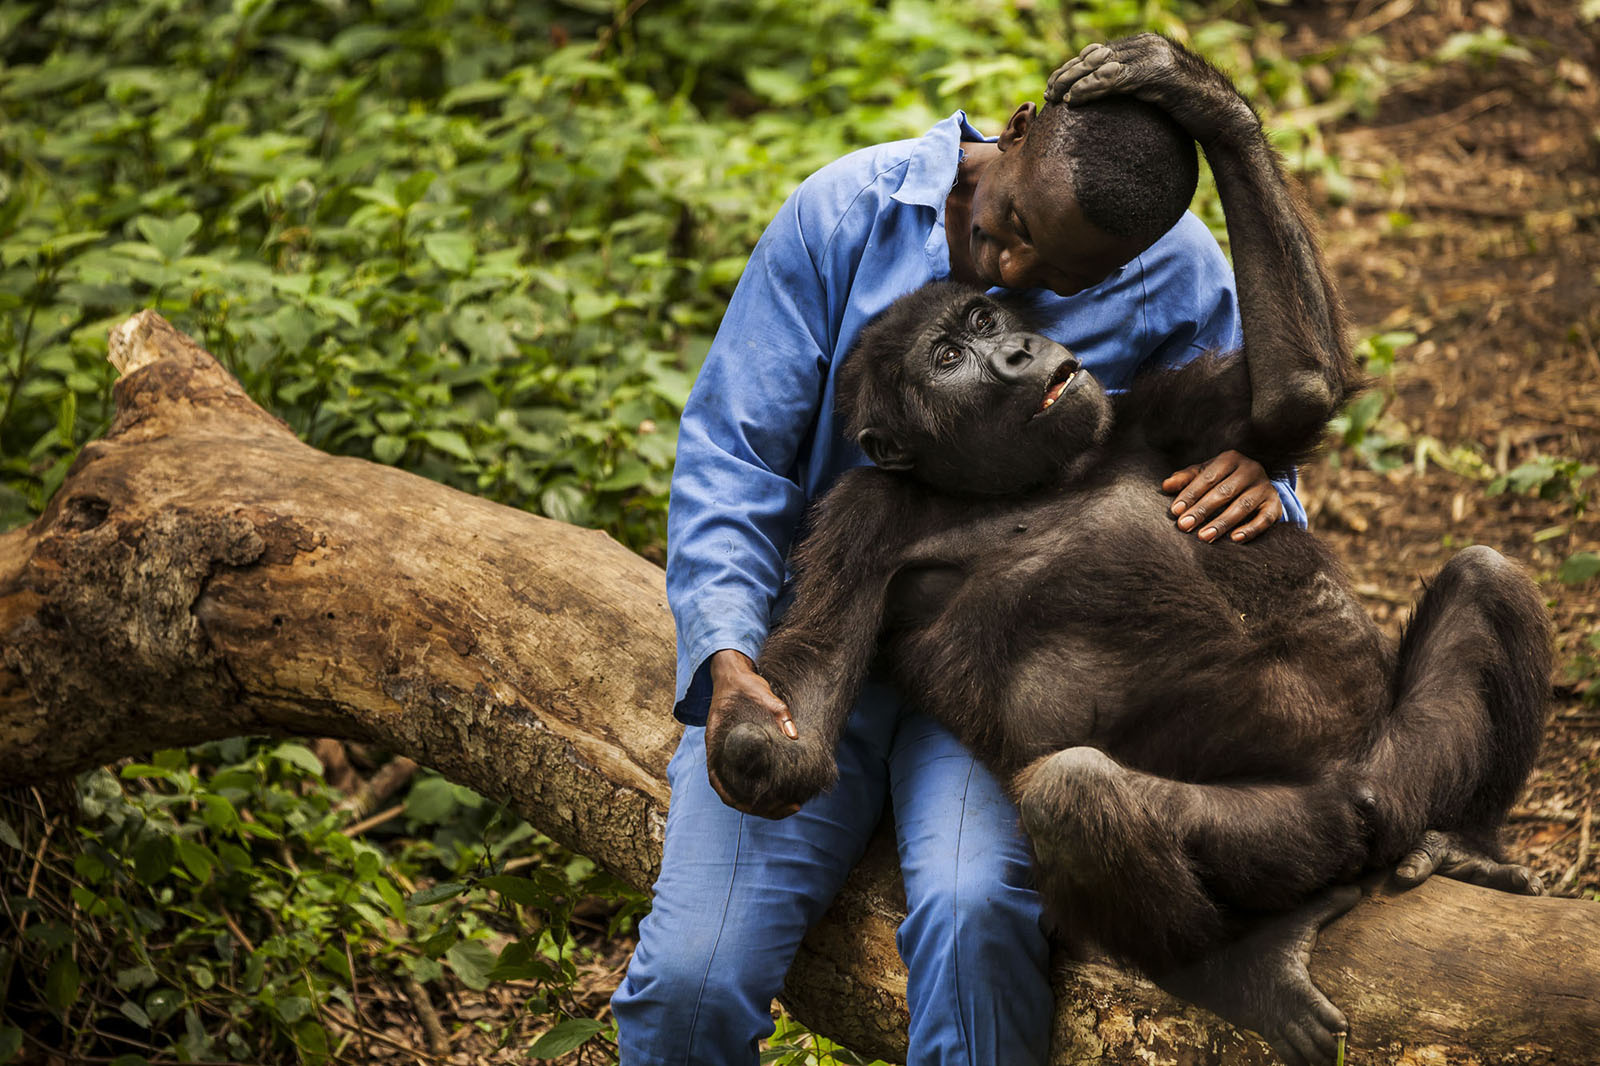 8 days mountaineering Congo safari with gorillas in Virunga national park and Volcanoes national park